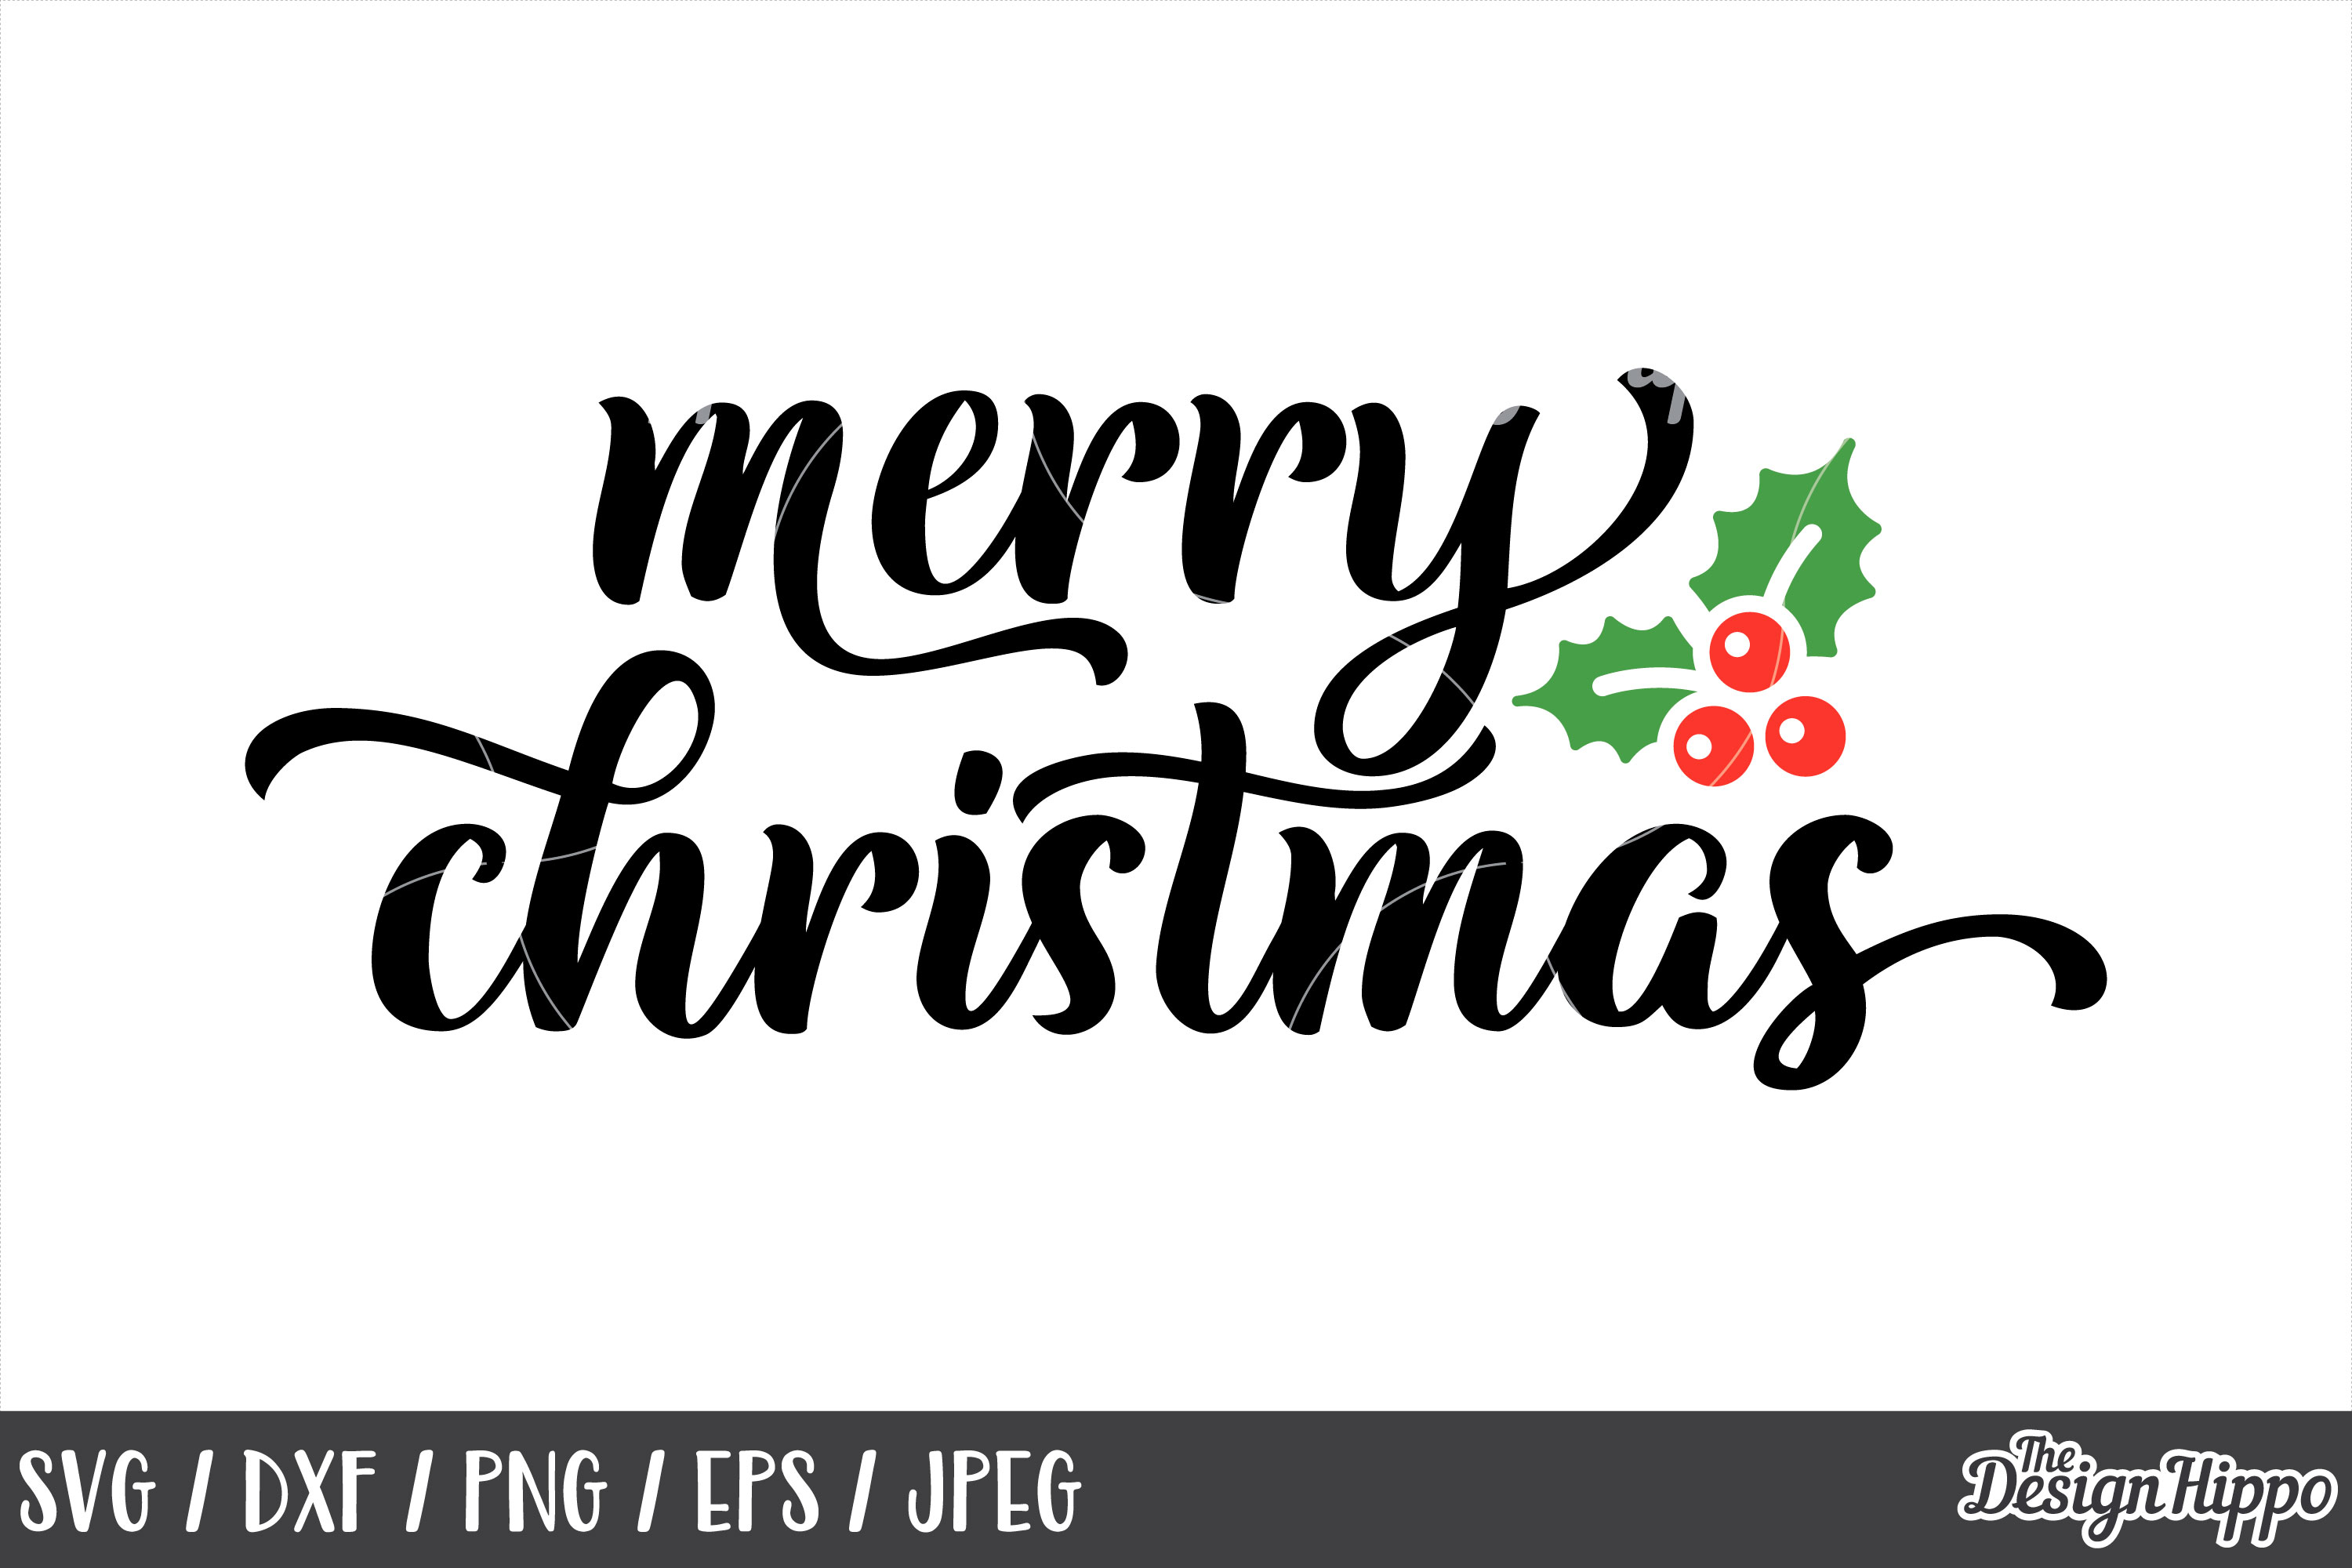 Merry Christmas Svg Mistletoe Dxf Png 1172251 Png Images Pngio